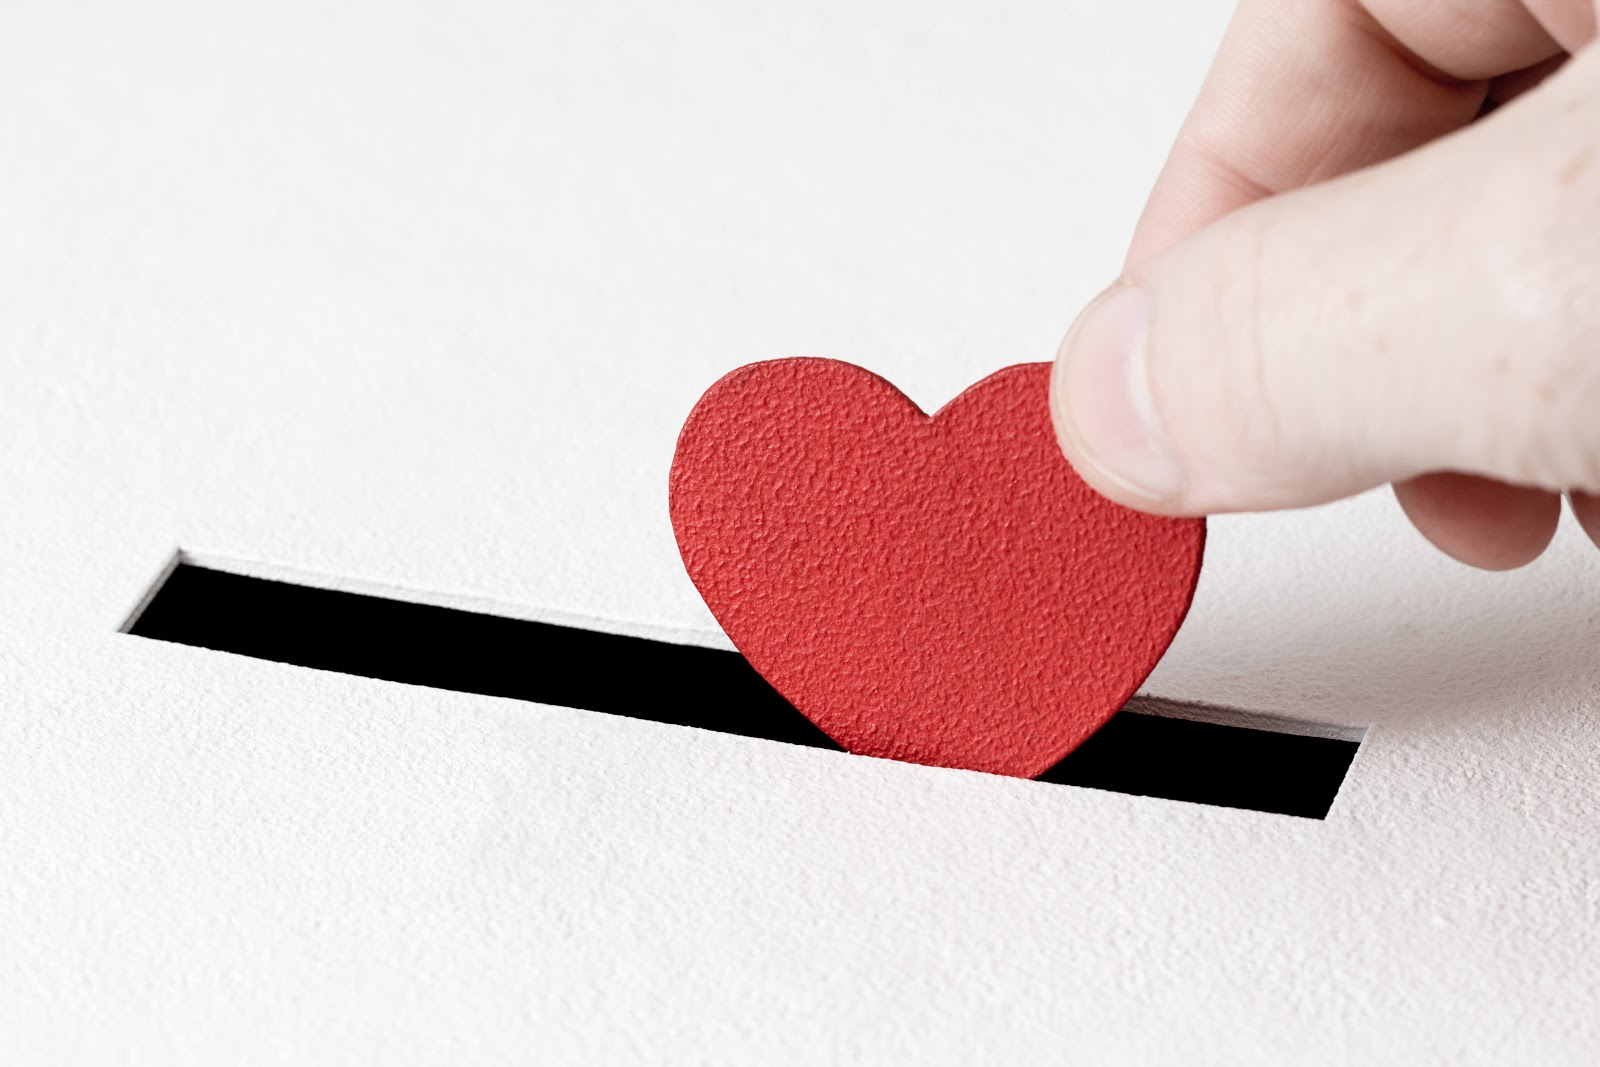 Hand putting a red heart in a box